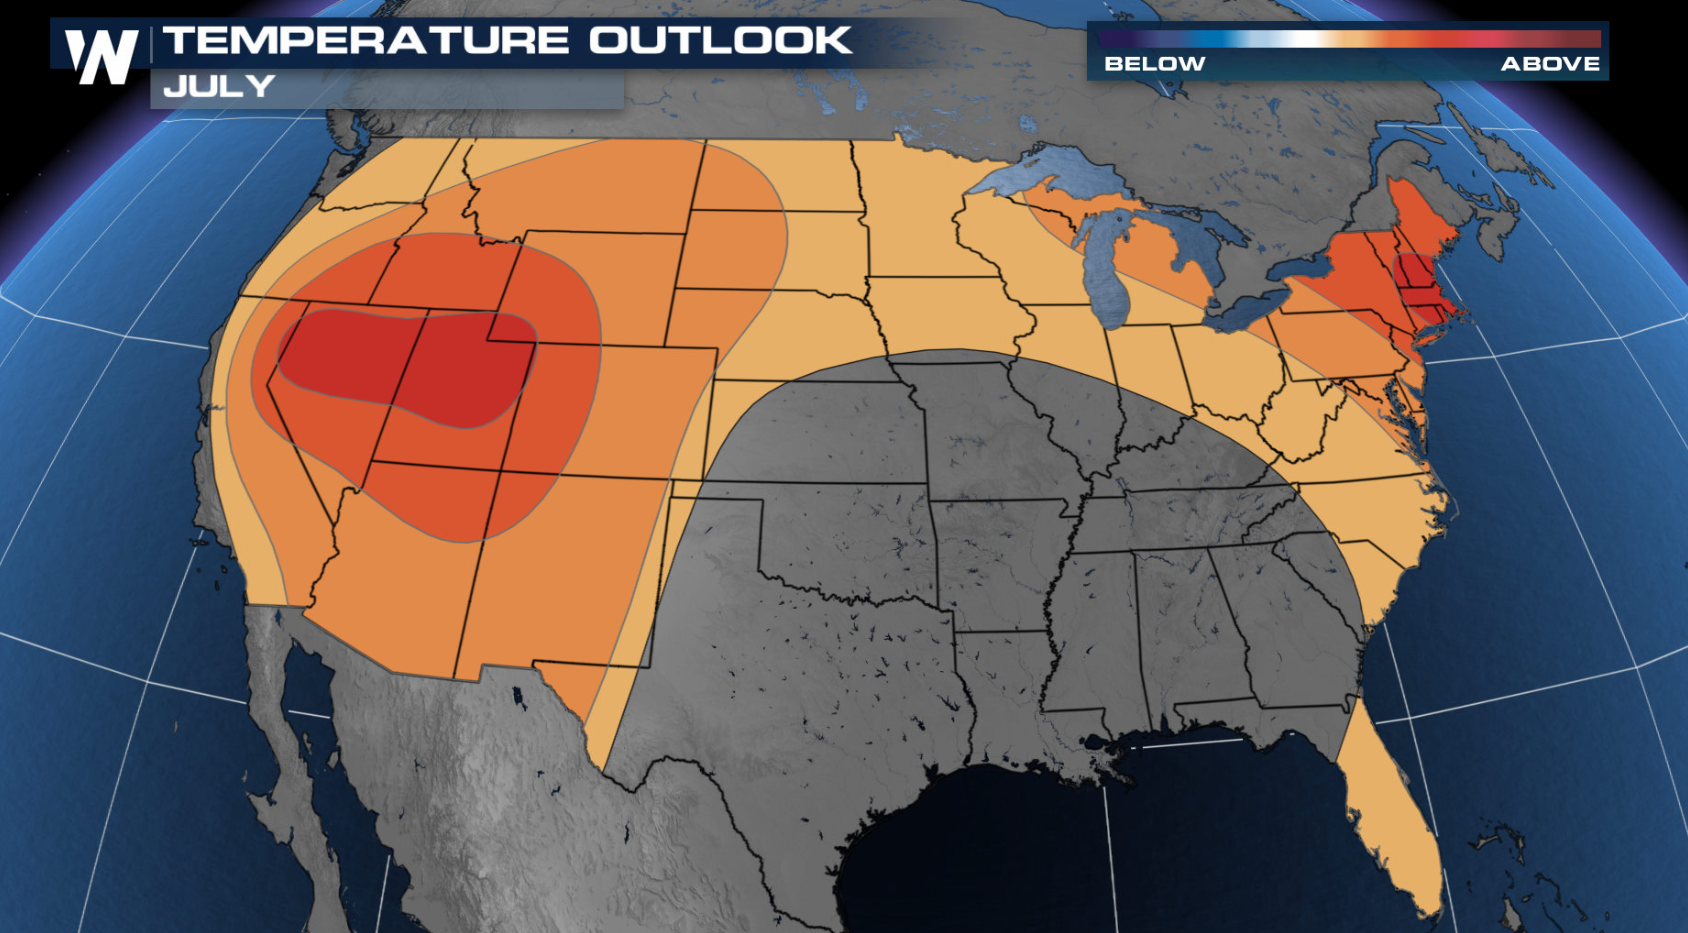 July Outlook Issued from NOAA's Climate Prediction Center